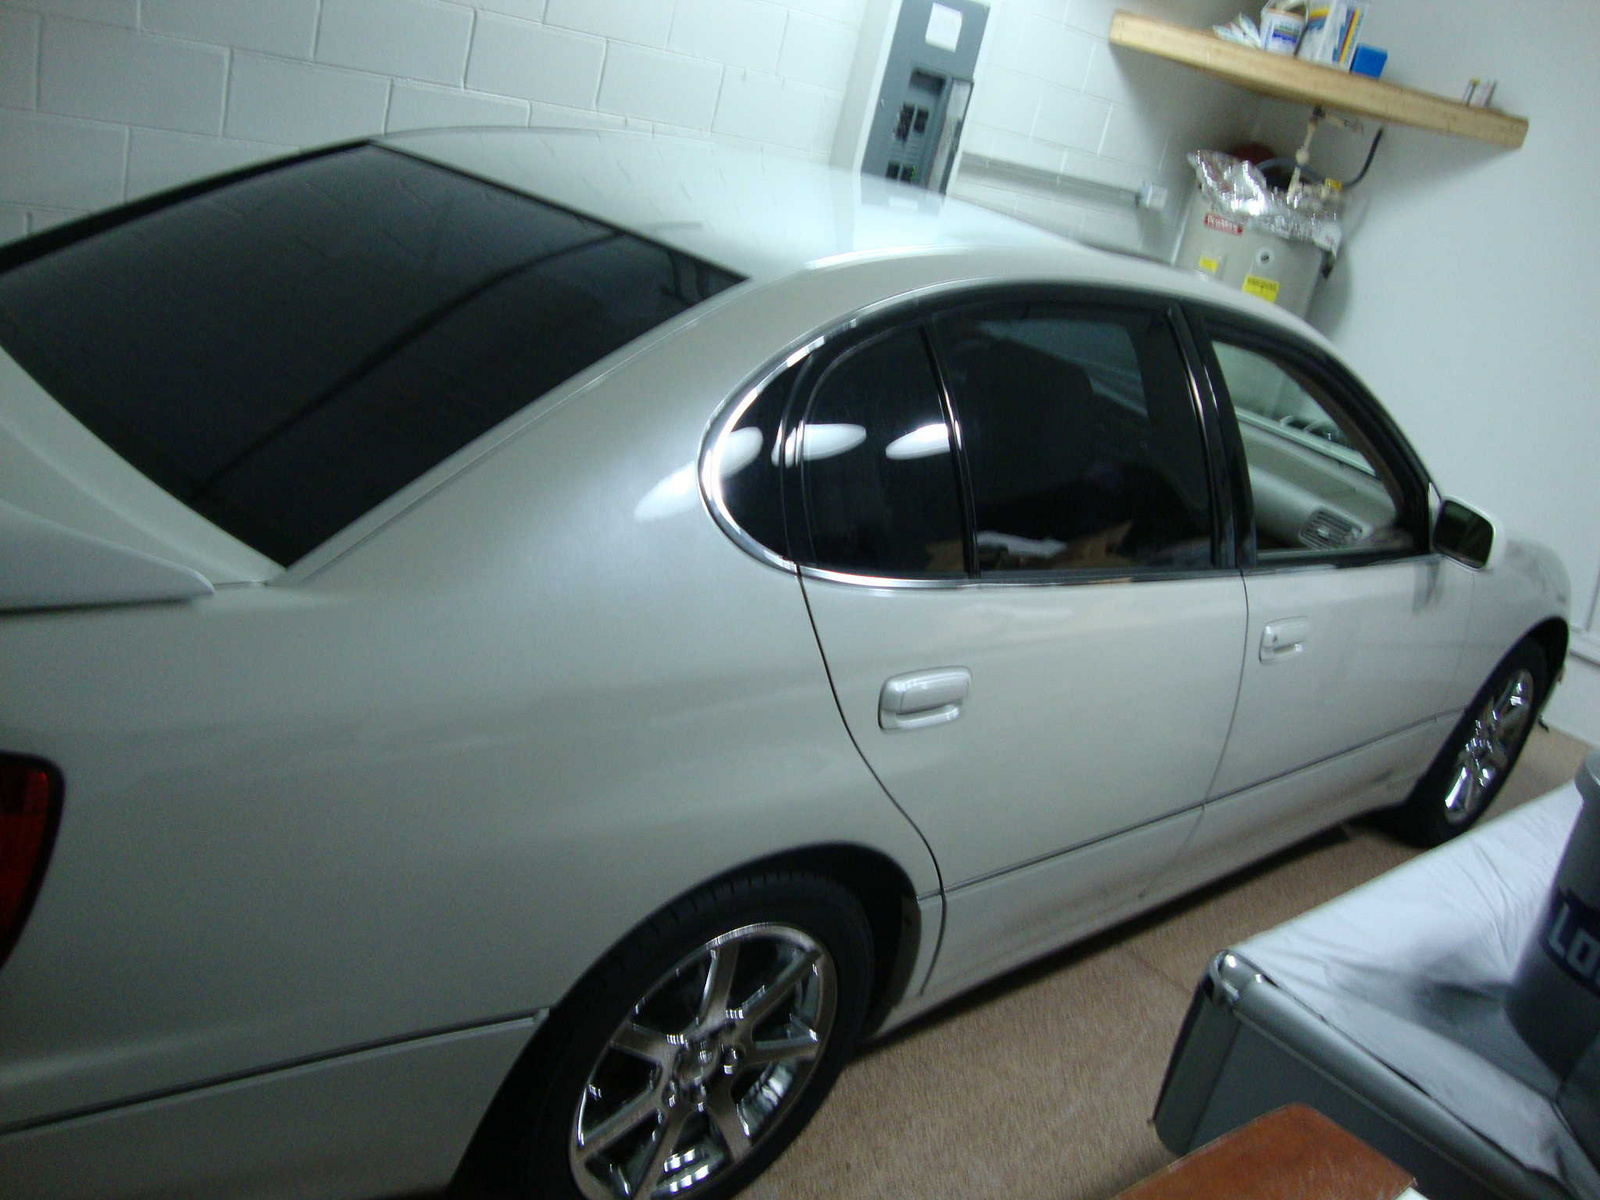 2004 Lexus GS 430 4 Dr STD Sedan picture